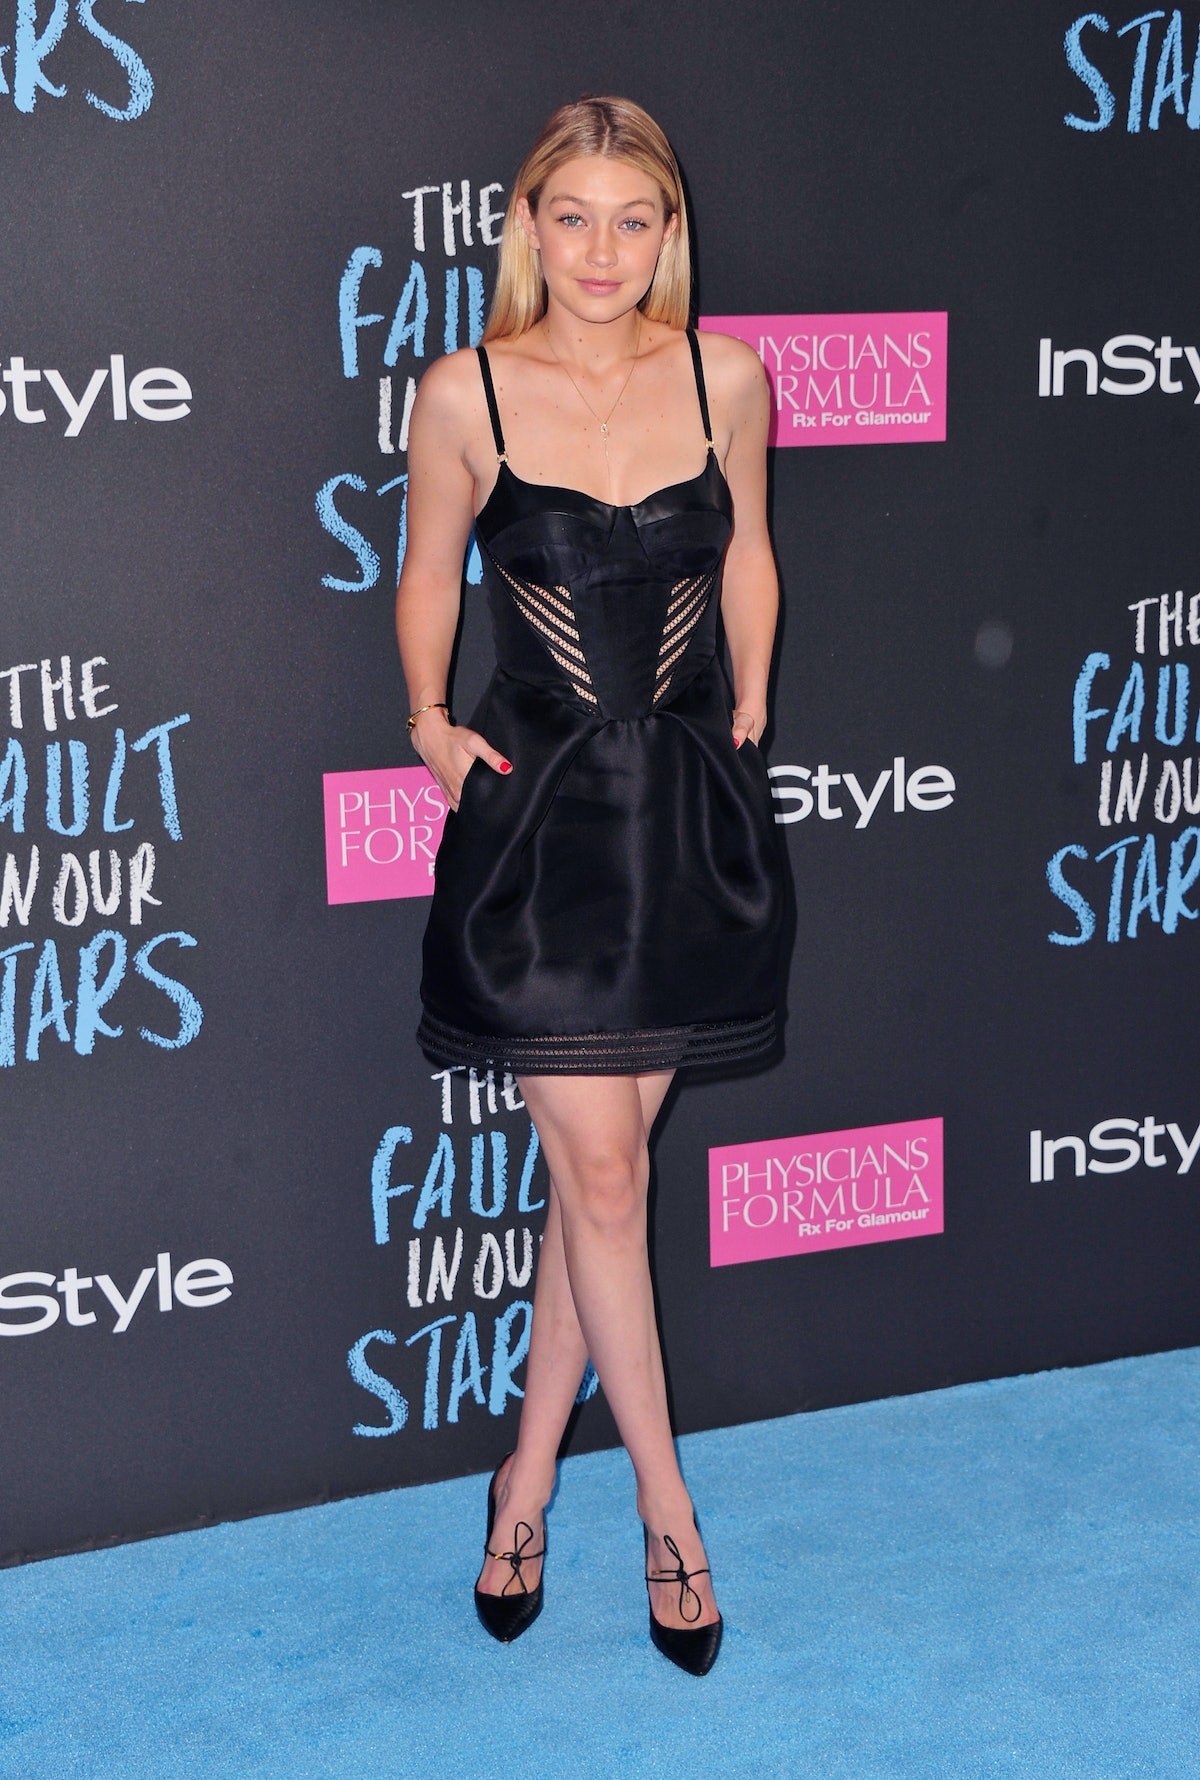 """NEW YORK, NY - JUNE 02:  Model Gigi Hadid attends """"The Fault In Our Stars"""" premiere at Ziegfeld Thea..."""